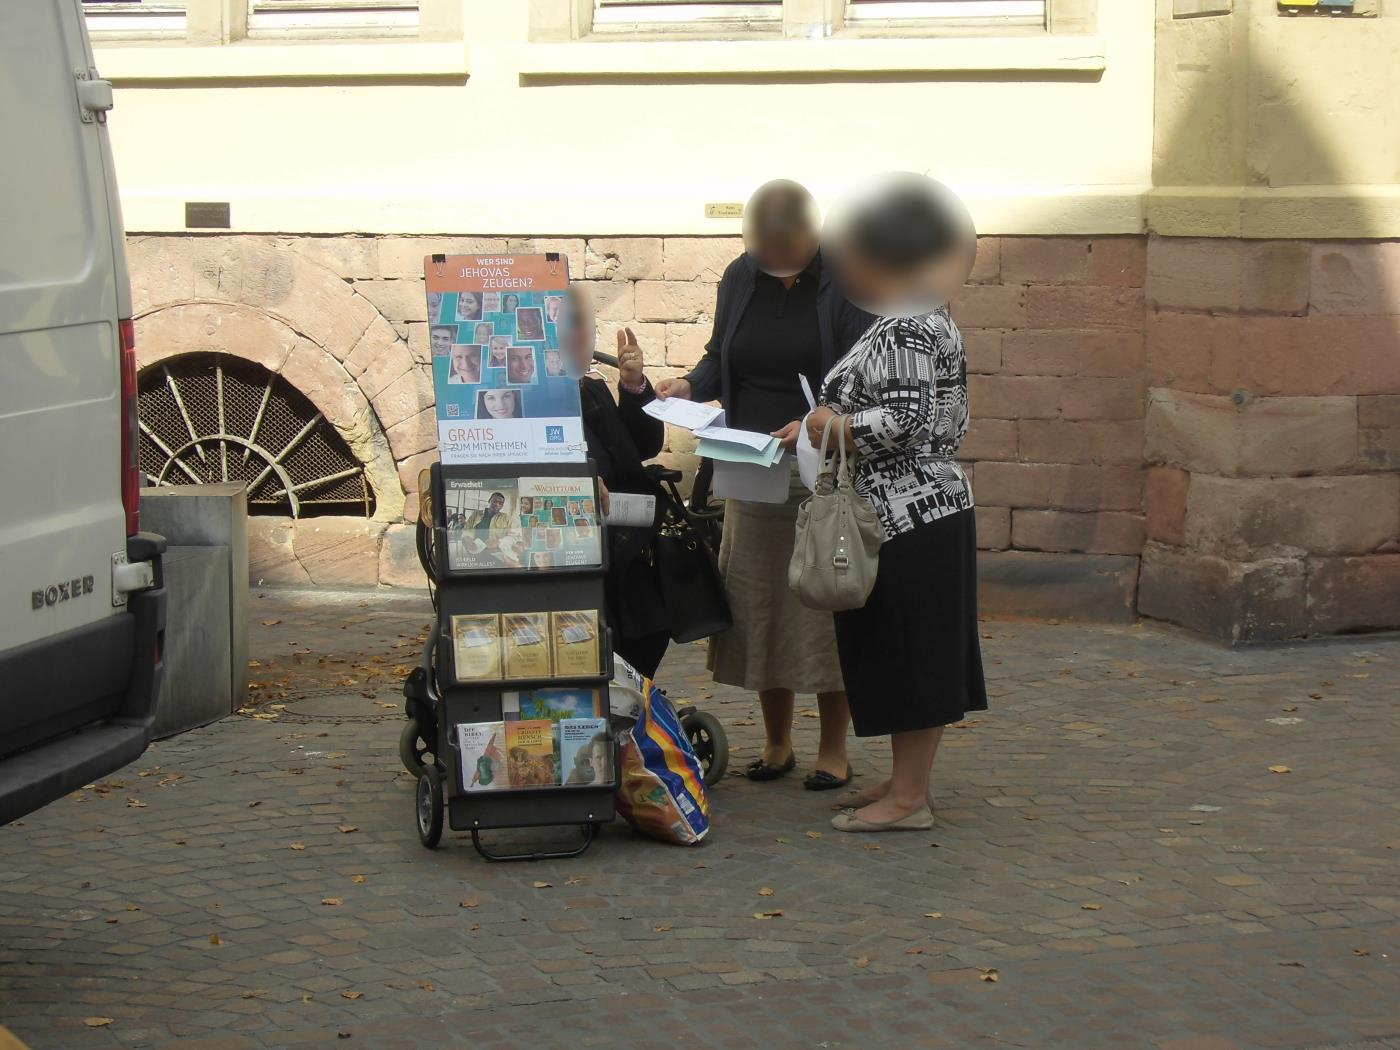 Heidelberg Jehovah's Witnesses disappear like caught thieves - through the back door!